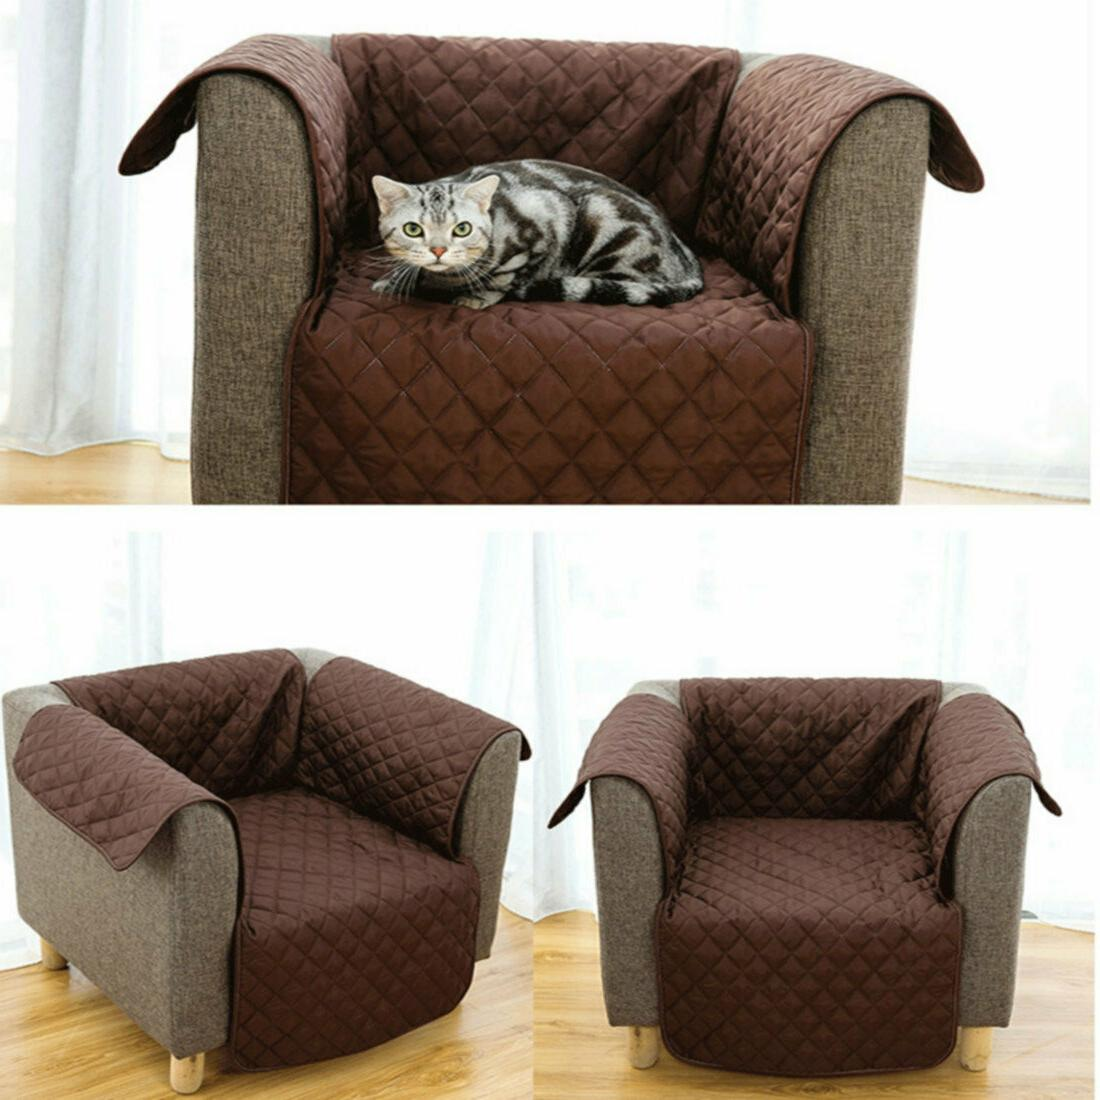 Recliner Cover Sofa Anti Slip Chair for Dog